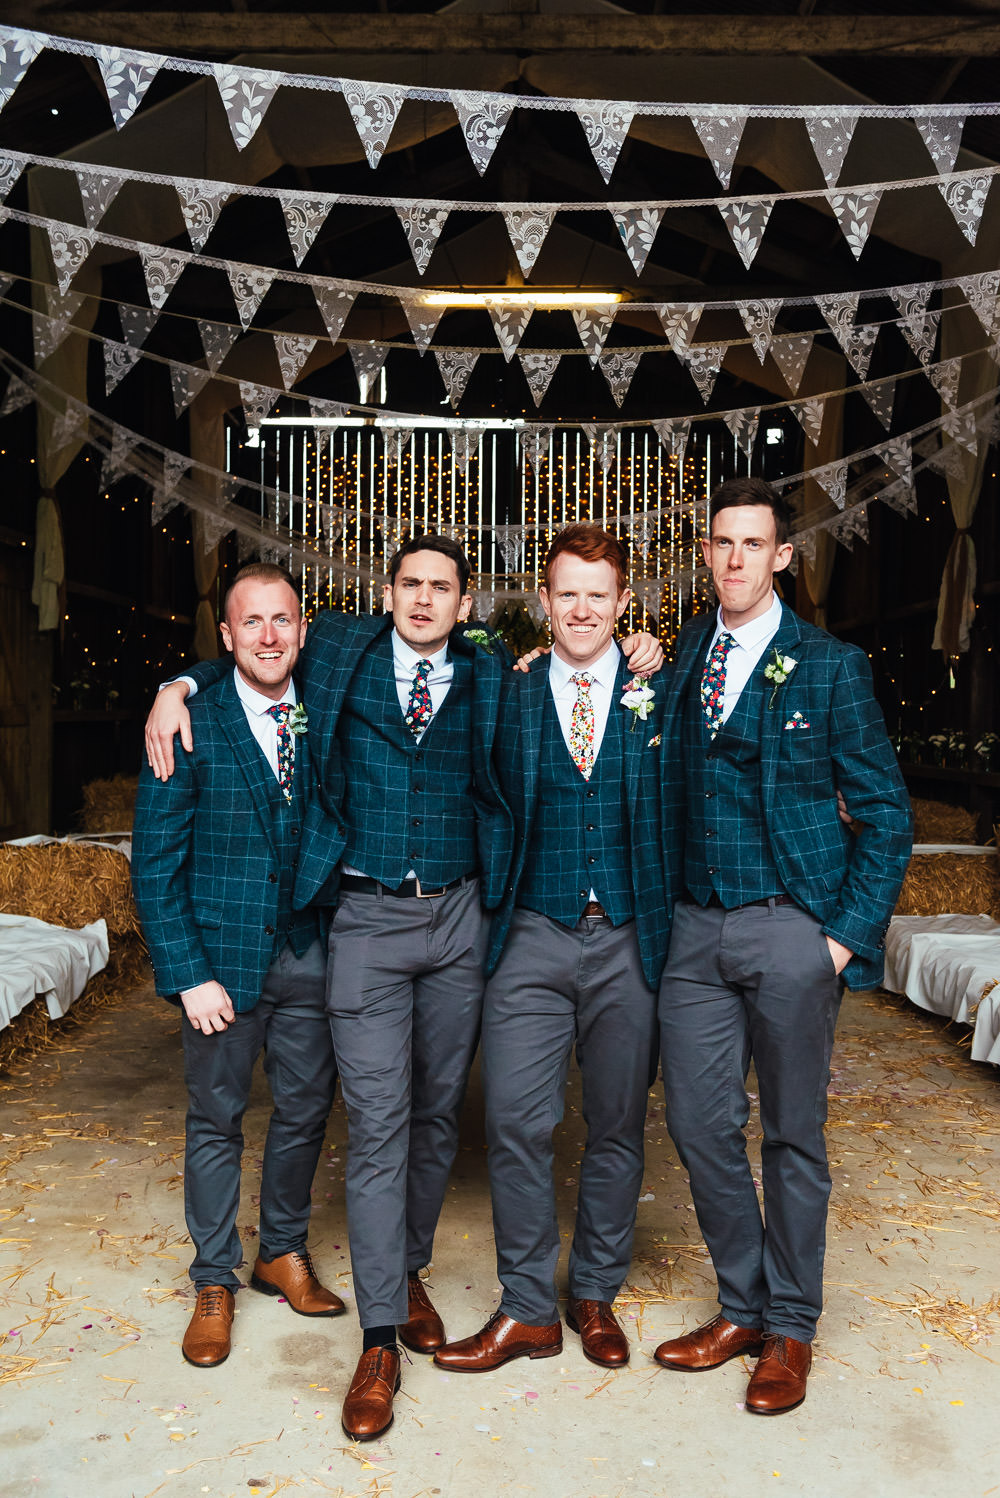 Groom Suit Blue Check Floral Tie Pocketsquare Groomsmen DIY Barn Wedding Jessica Grace Photography